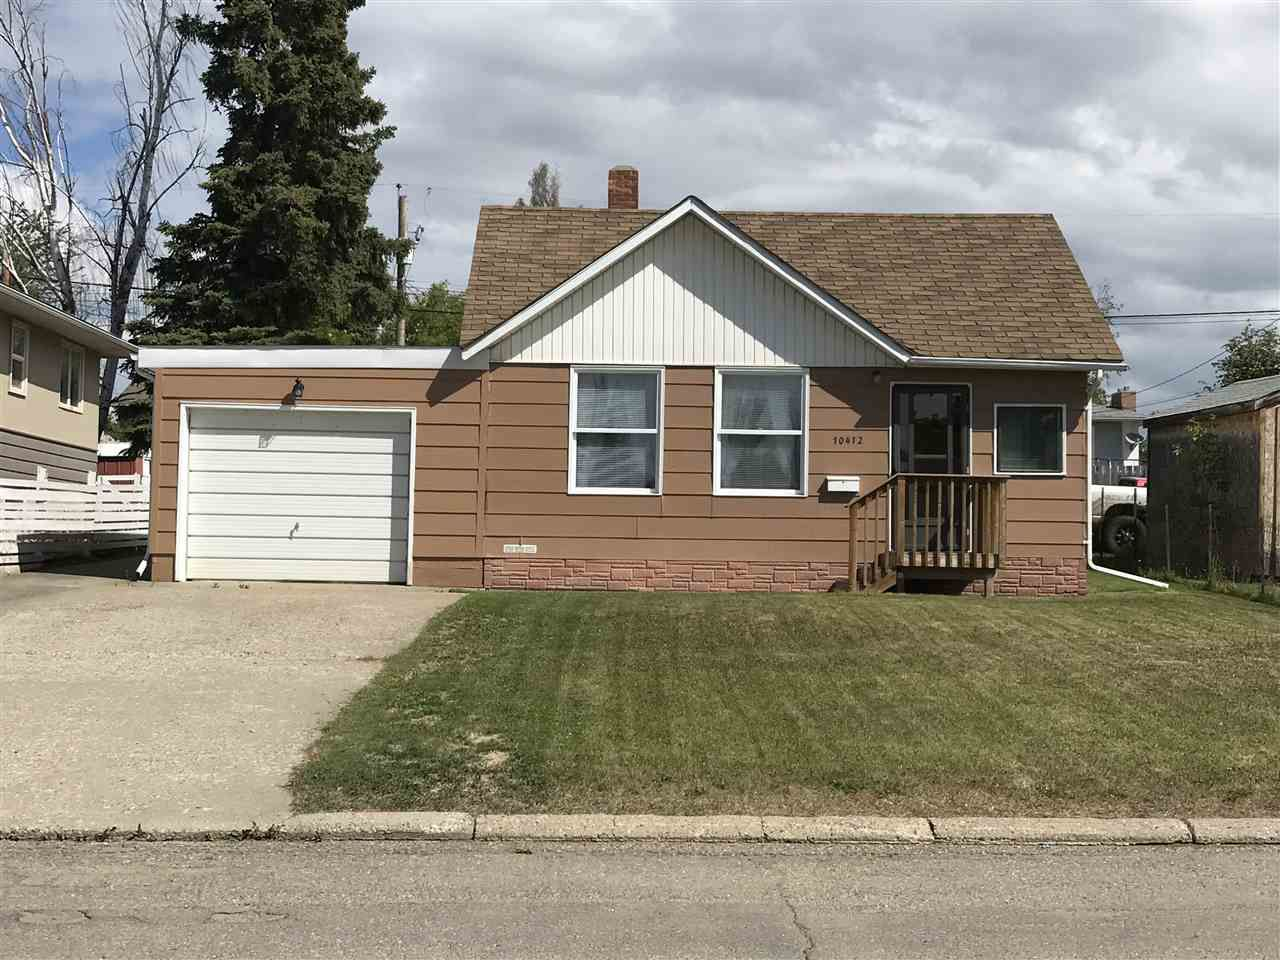 Main Photo: 10412 103 Avenue in Fort St. John: Fort St. John - City NW House for sale (Fort St. John (Zone 60))  : MLS®# R2379092